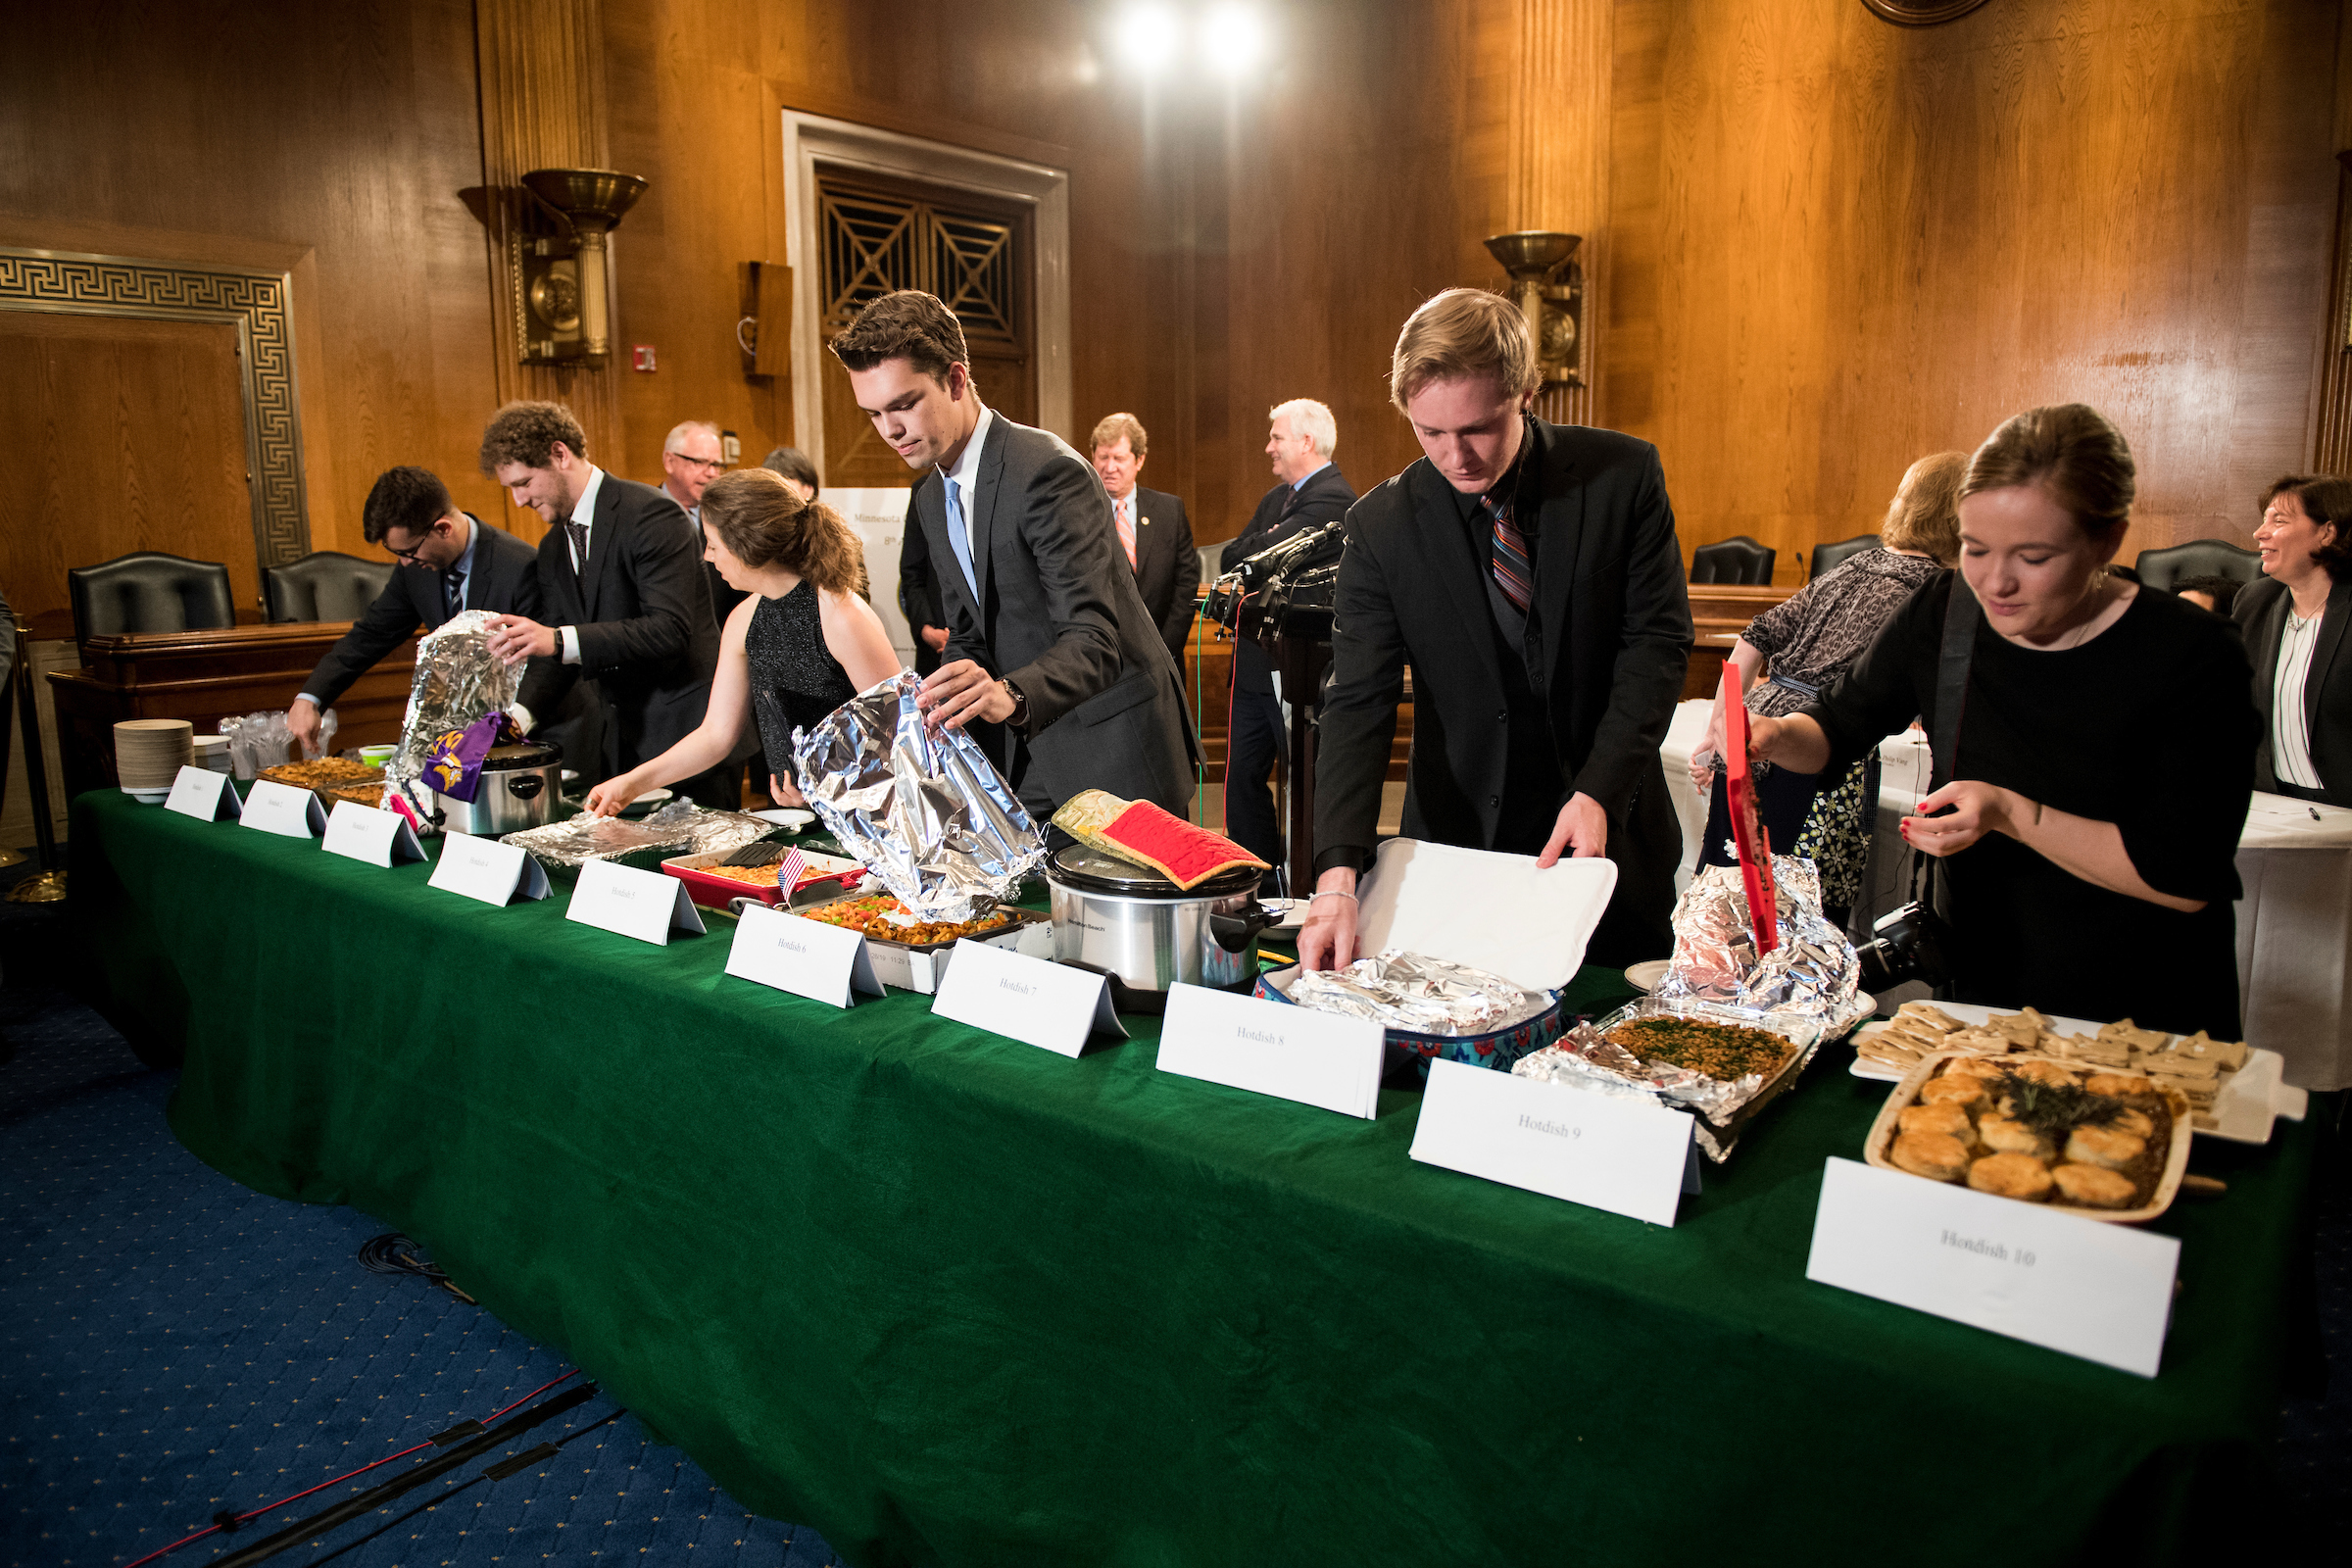 UNITED STATES - APRIL 25: Staffers uncover the dishes during the eighth annual Minnesota Congressional Delegation Hotdish Competition in the Dirksen Senate Office Building on Wednesday, April 25, 2018. (Photo By Bill Clark/CQ Roll Call)